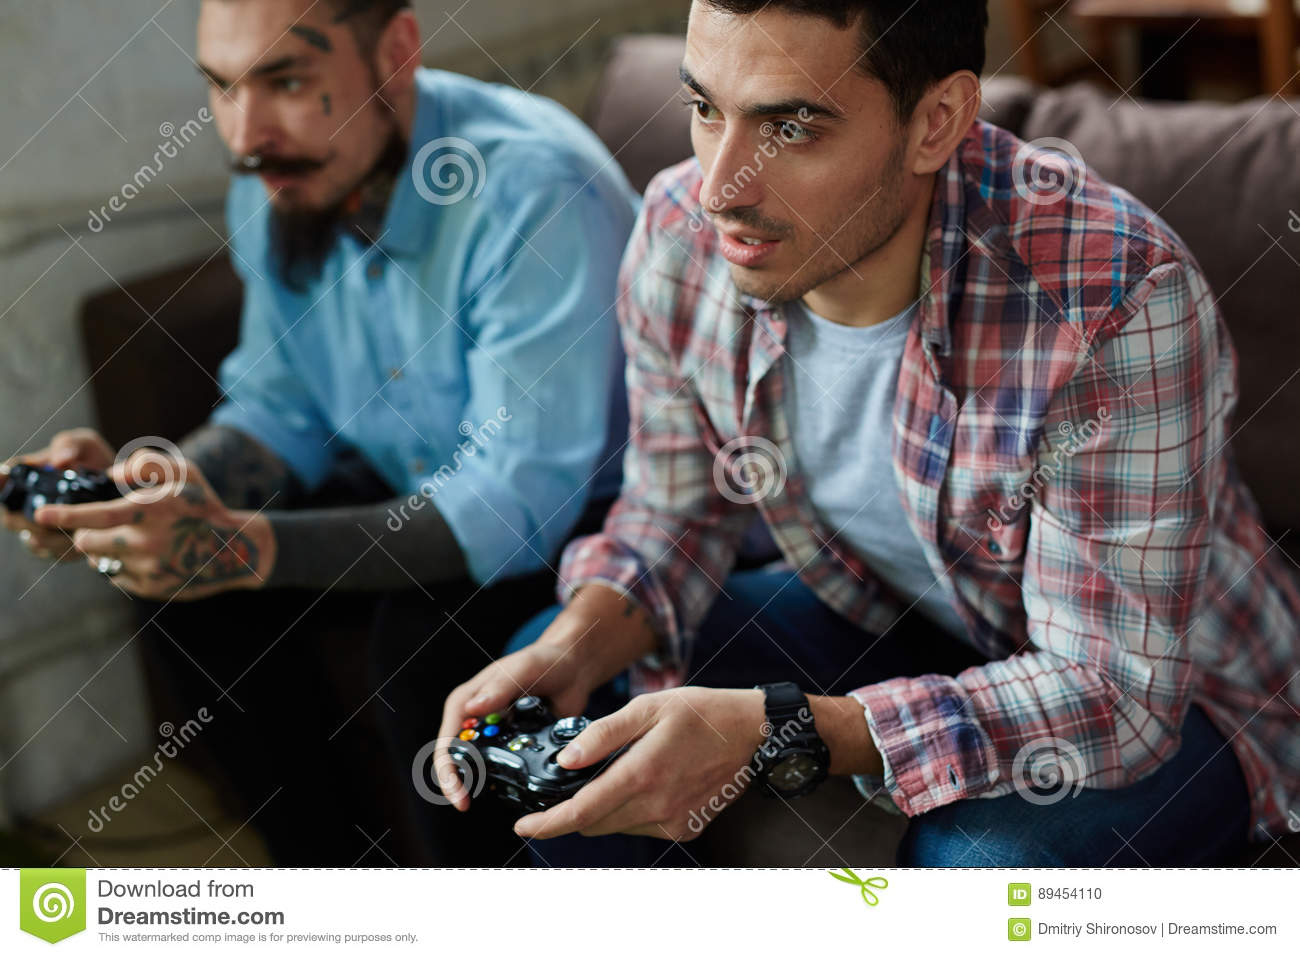 Portrait of two modern adult men, one of them heavily tattooed, holding  controllers and playing video game on couch, looking tense in competition